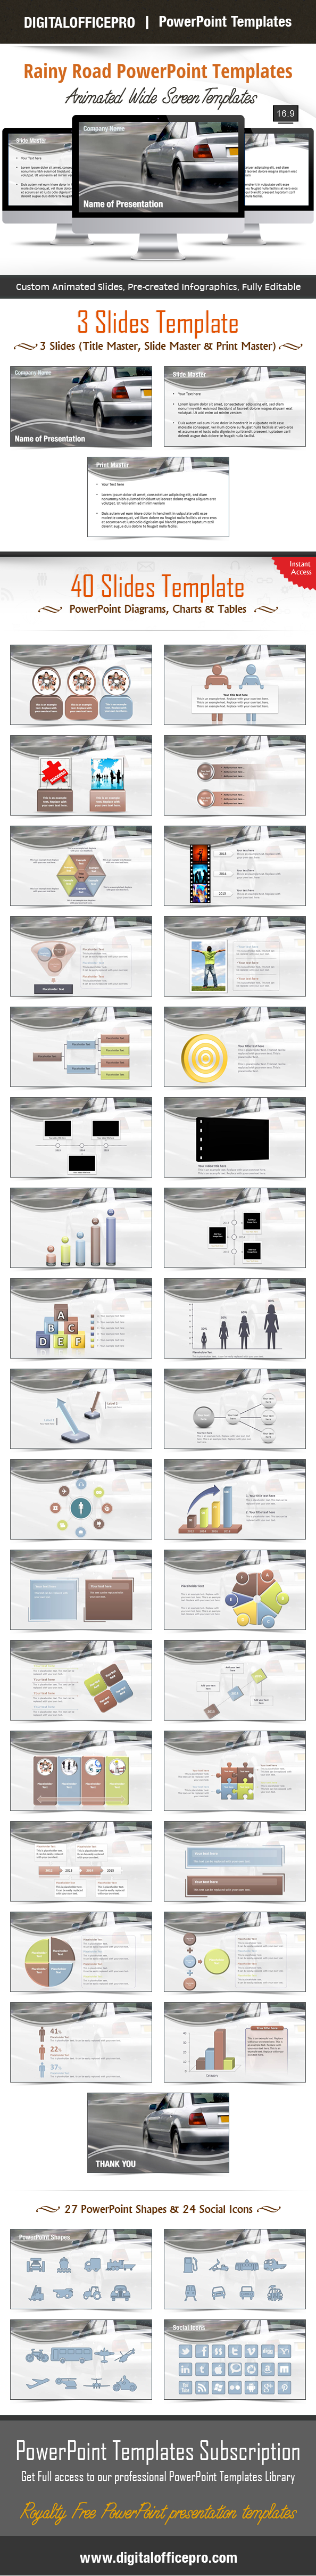 Impress and Engage your audience with Rainy Road PowerPoint Template and Rainy Road PowerPoint Backgrounds from DigitalOfficePro. Each template comes with a set of PowerPoint Diagrams, Charts & Shapes and are available for instant download.